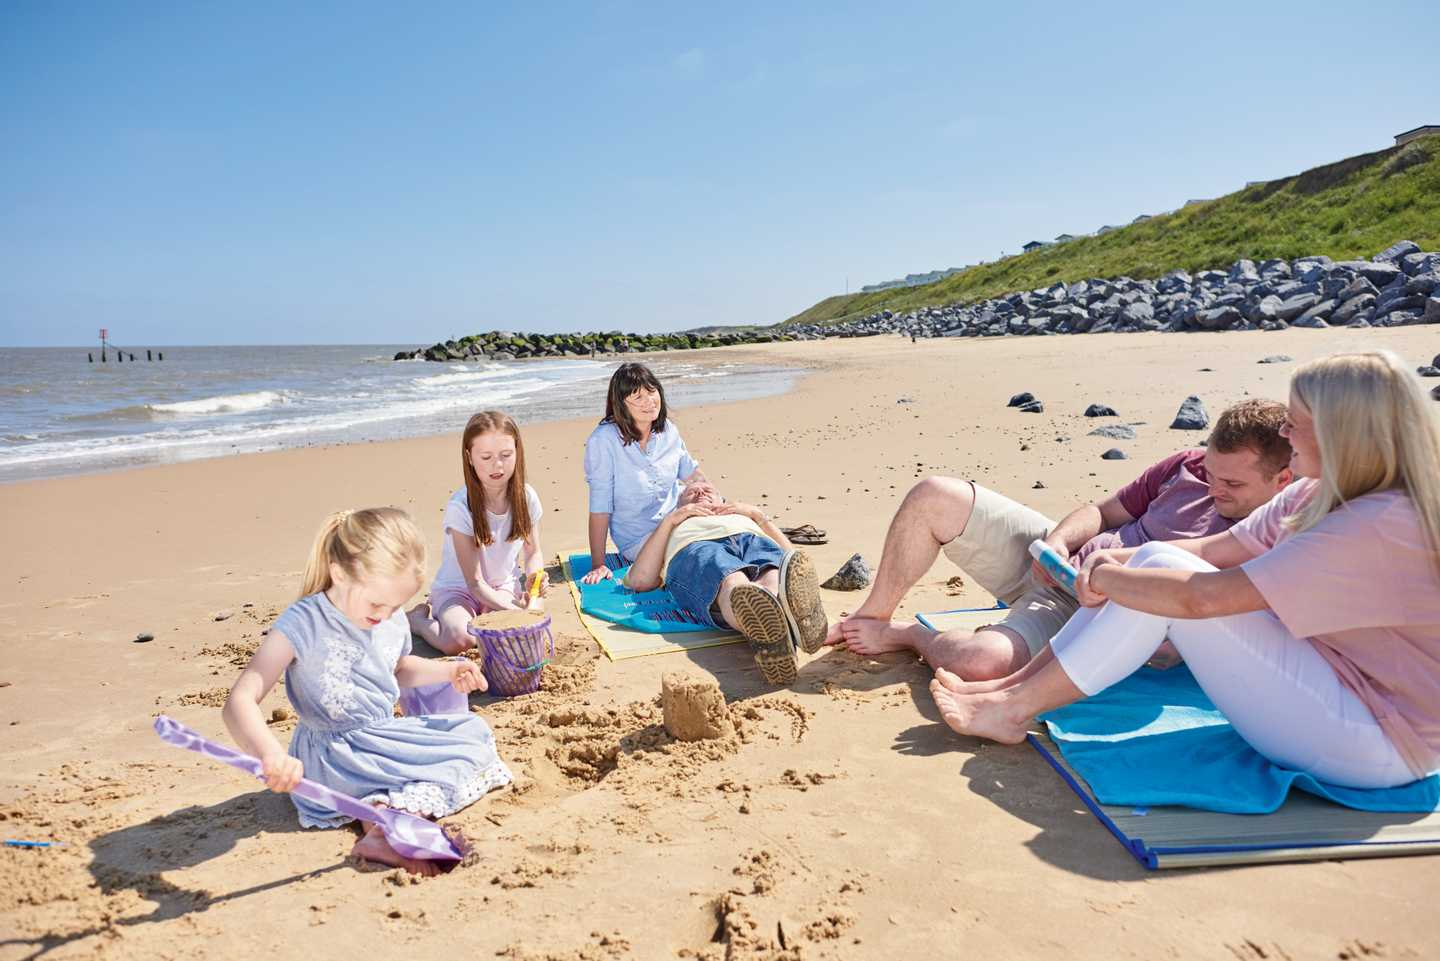 Enjoy the beach at Hopton